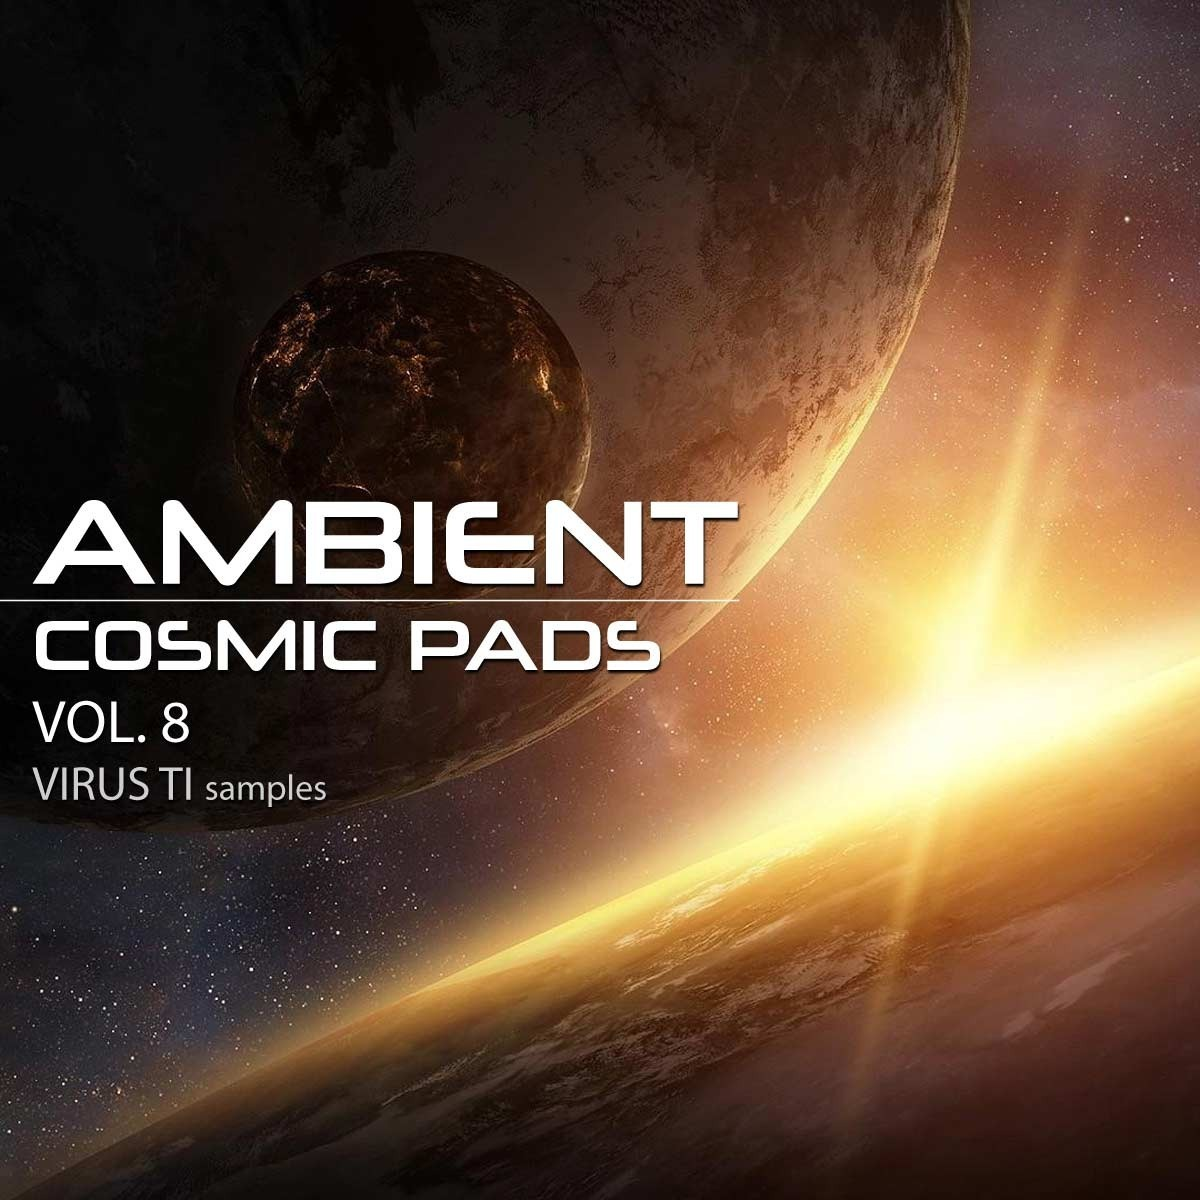 Ambient Cosmic Pads Vol 8